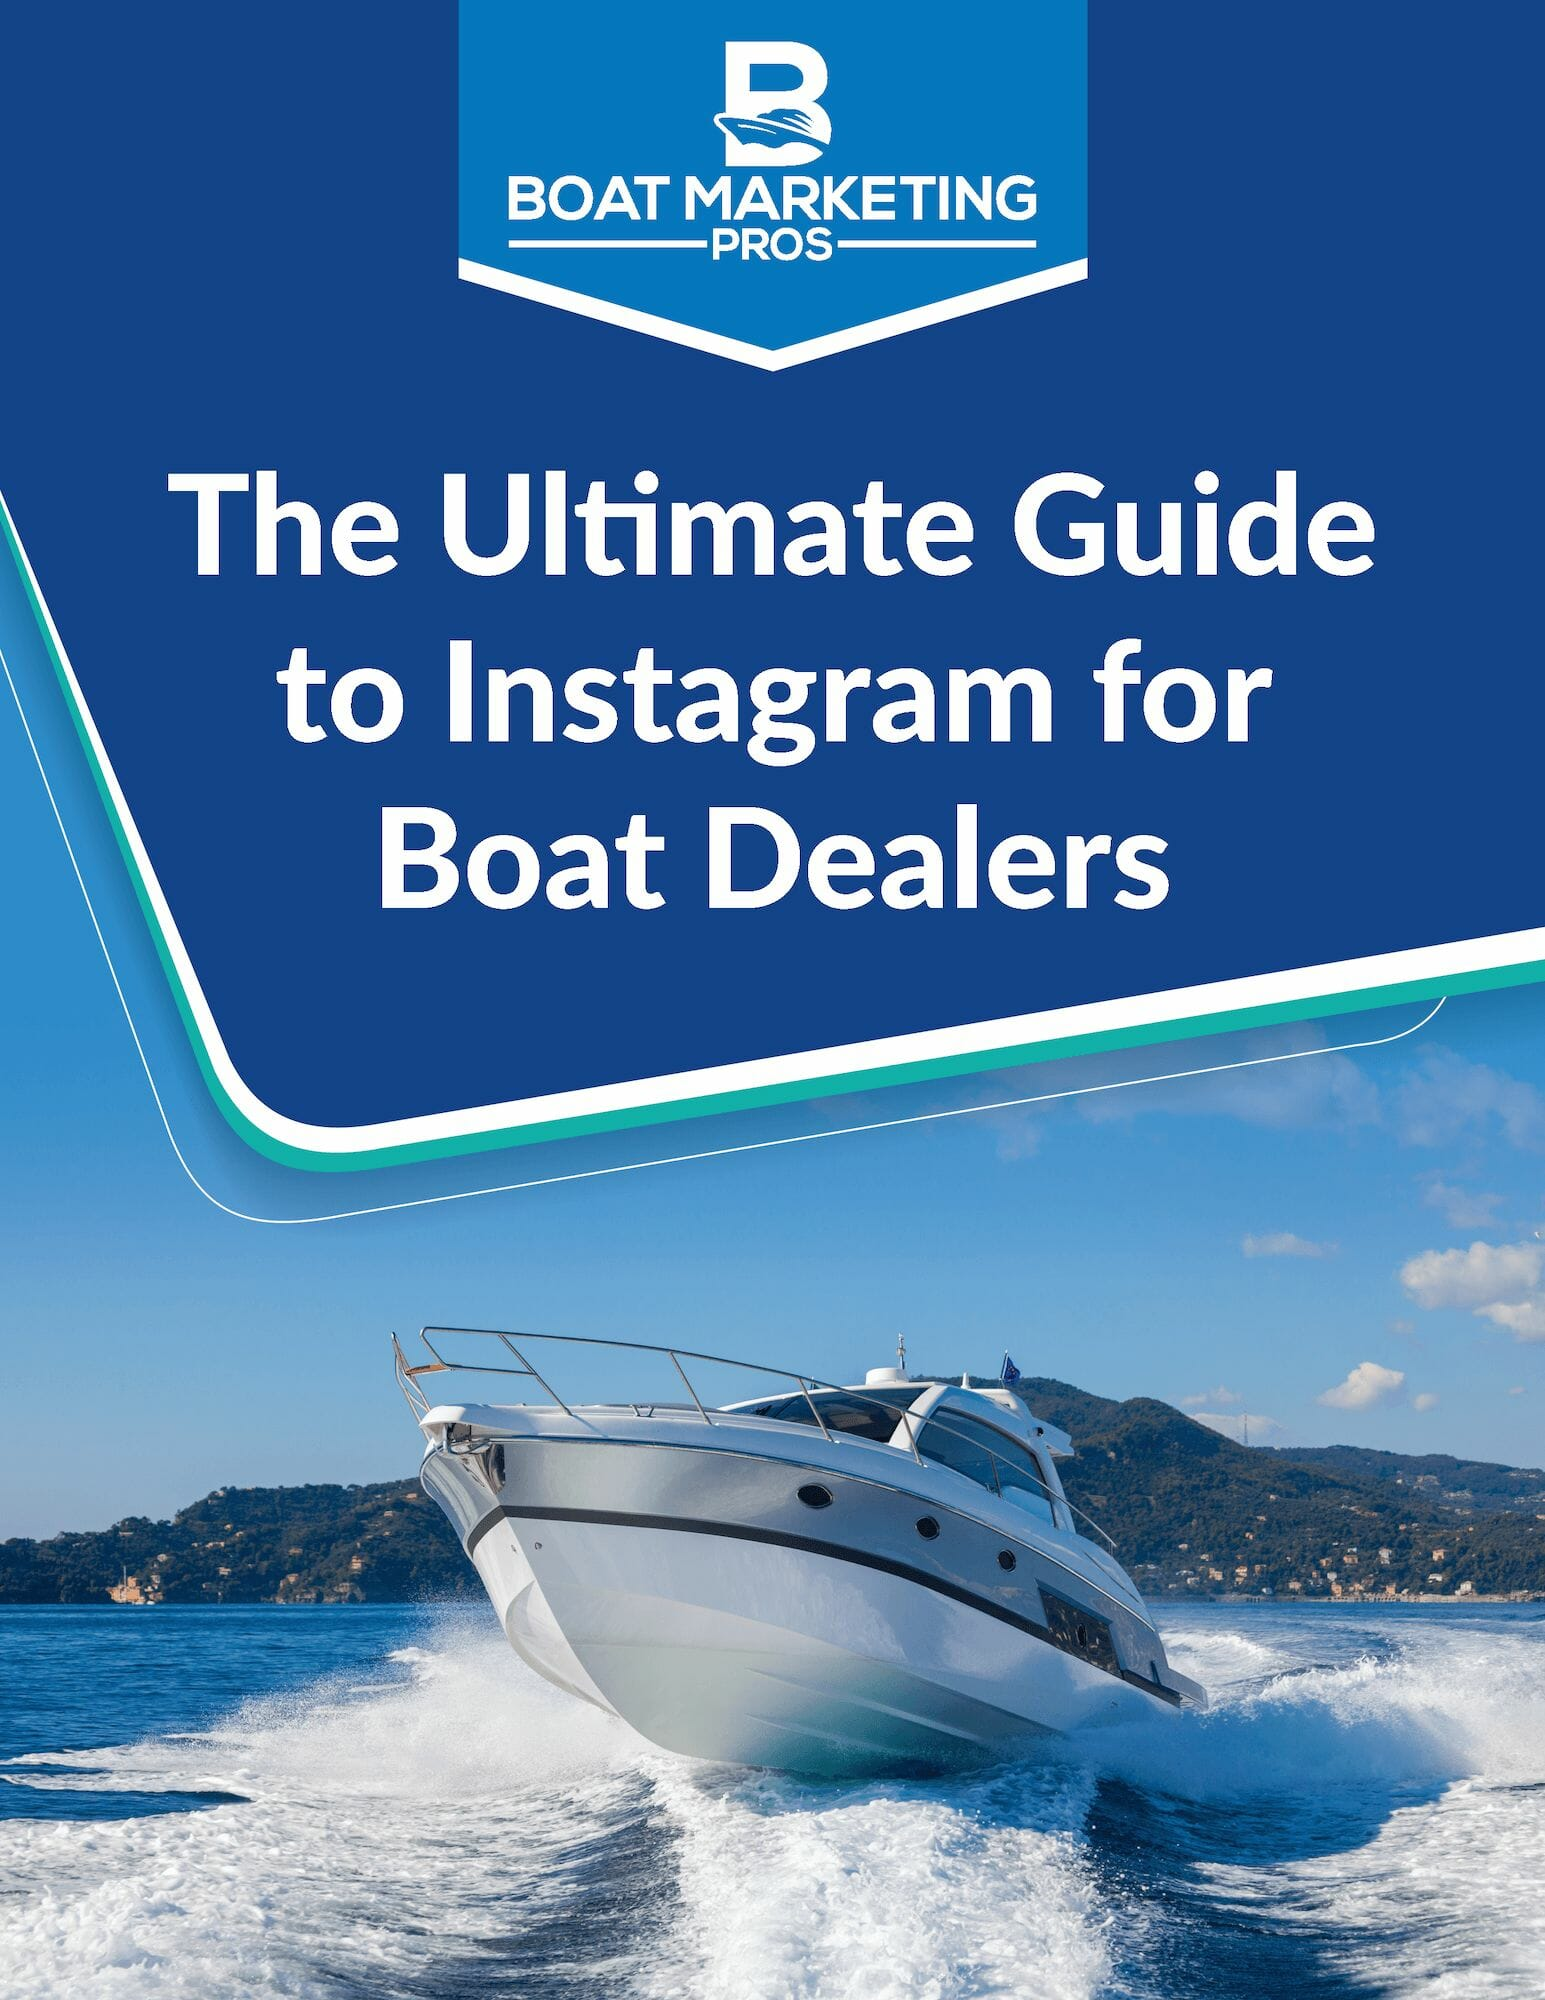 Cover of The Ultimate Guide to Instagram for Boat Dealers